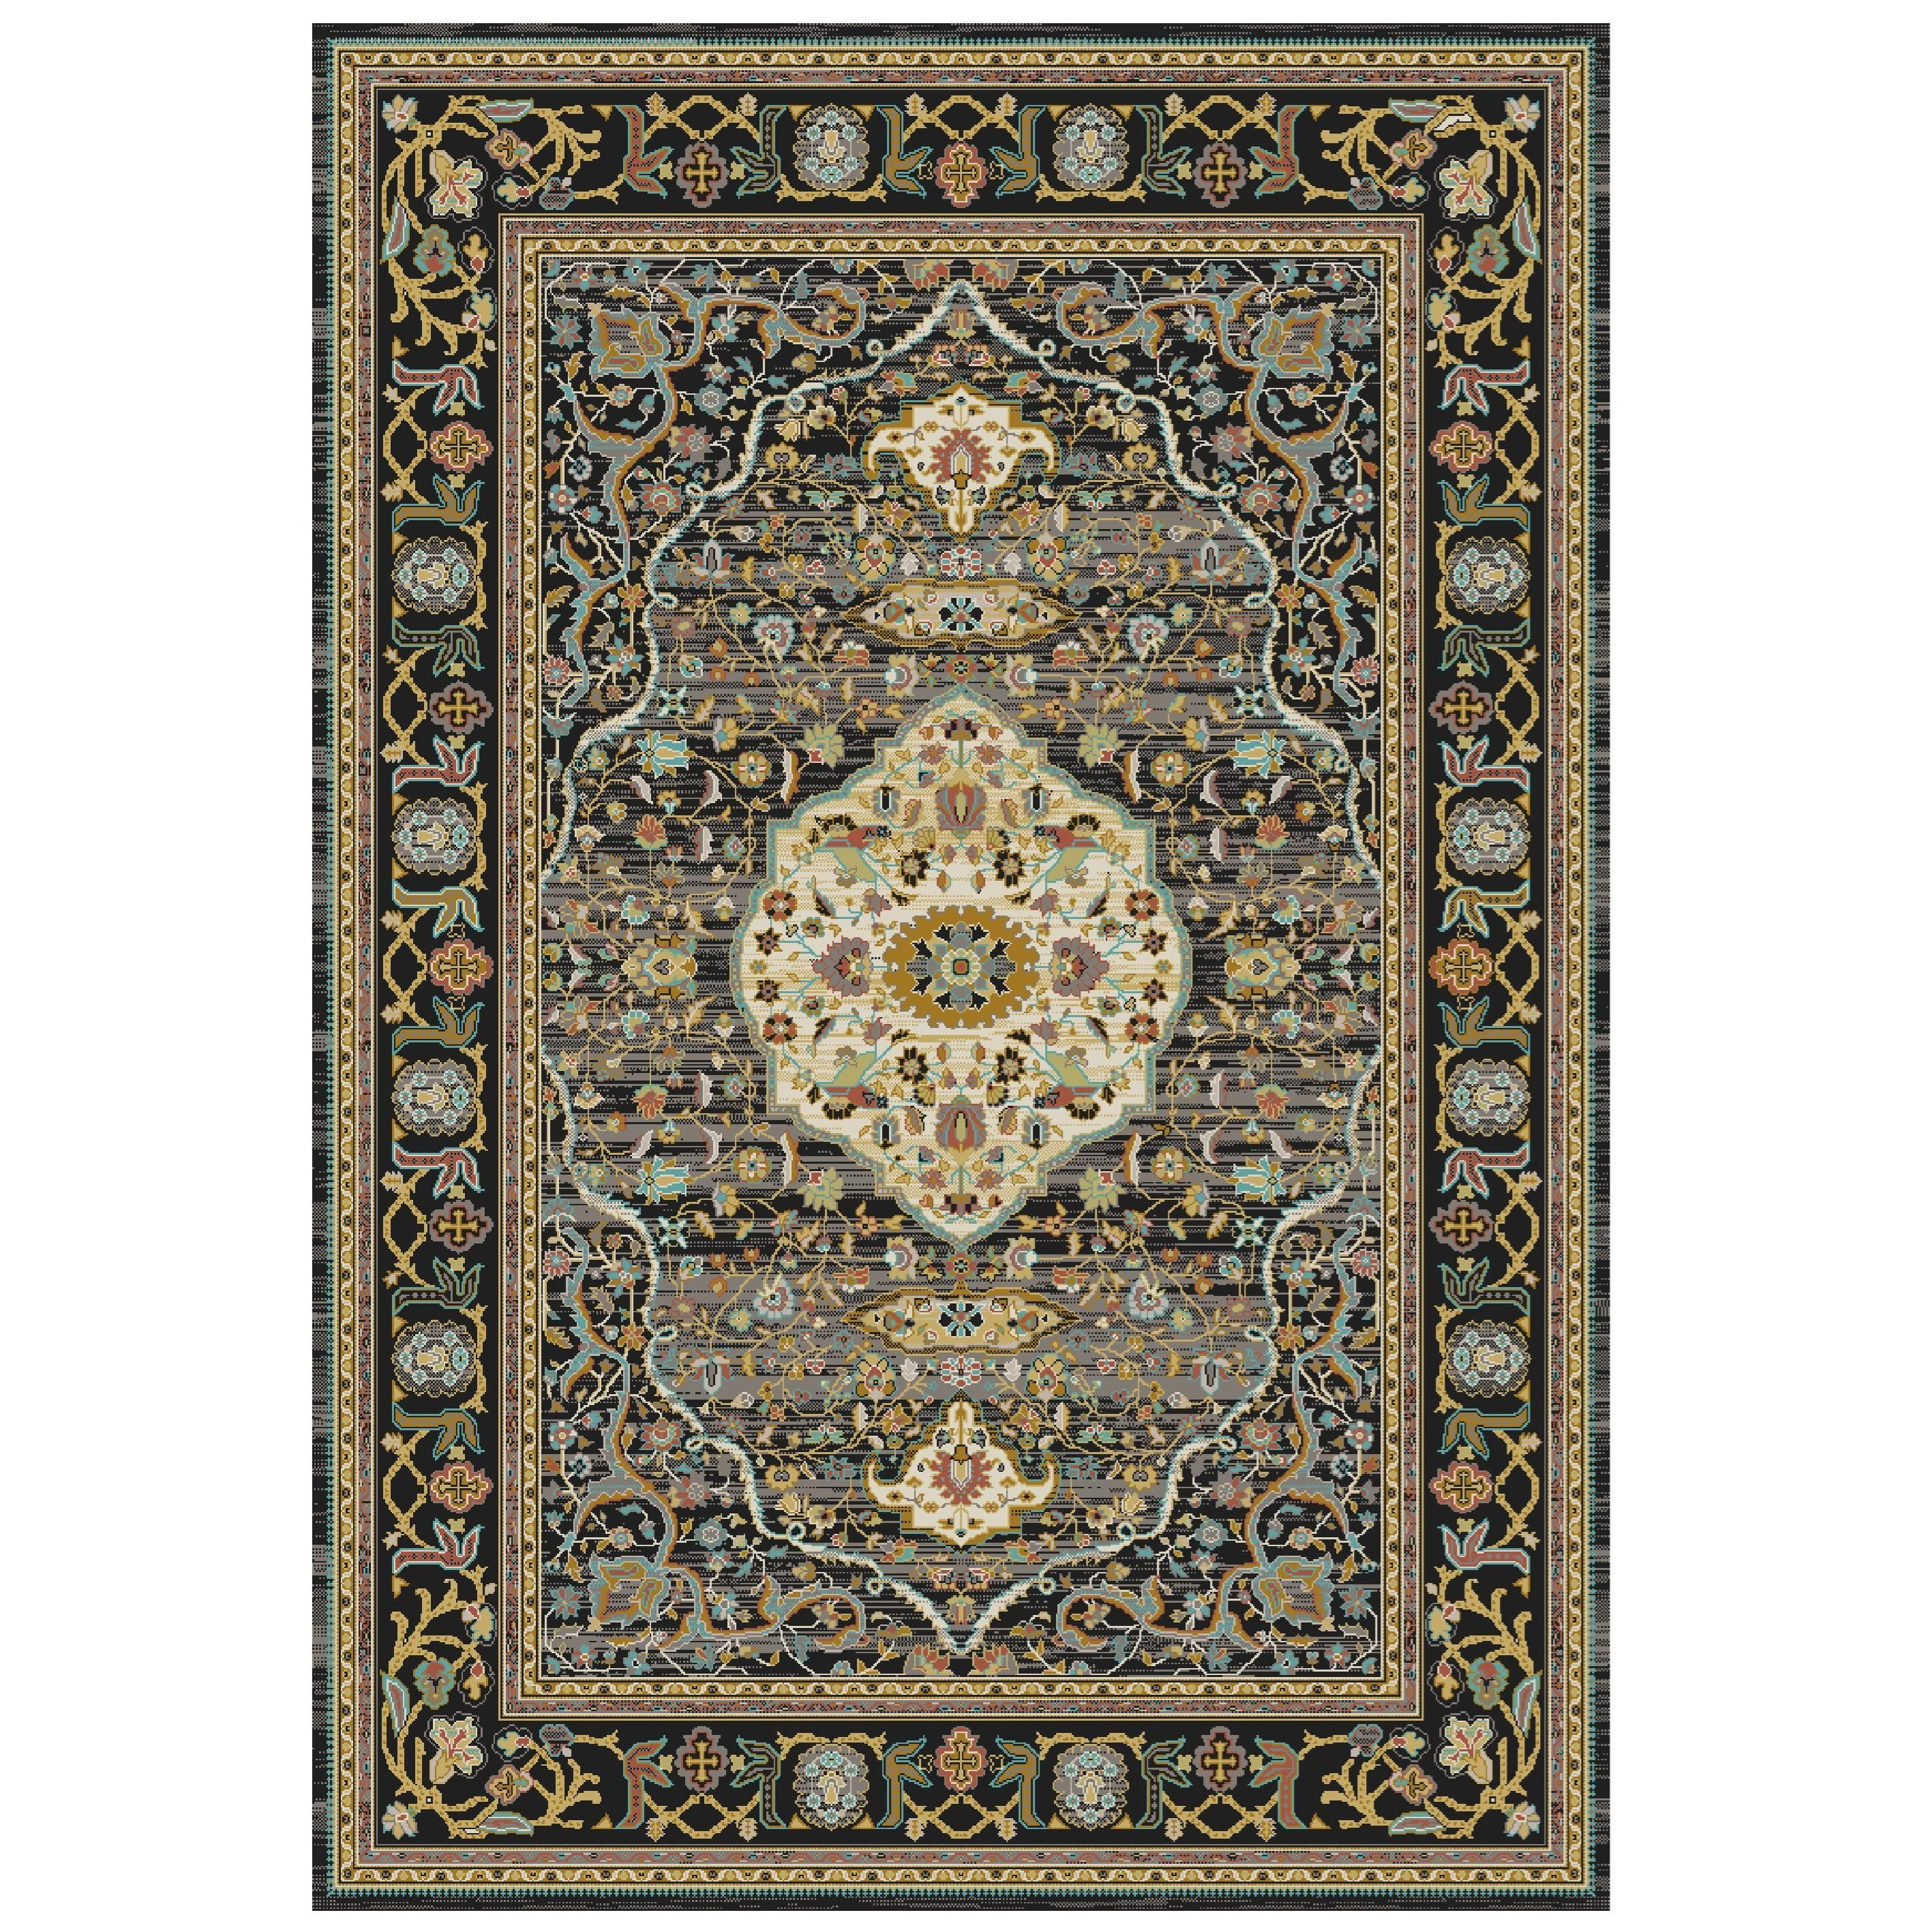 Spice Market 3'5x5'5 Petra Charcoal Rug by Karastan Rugs at Darvin Furniture